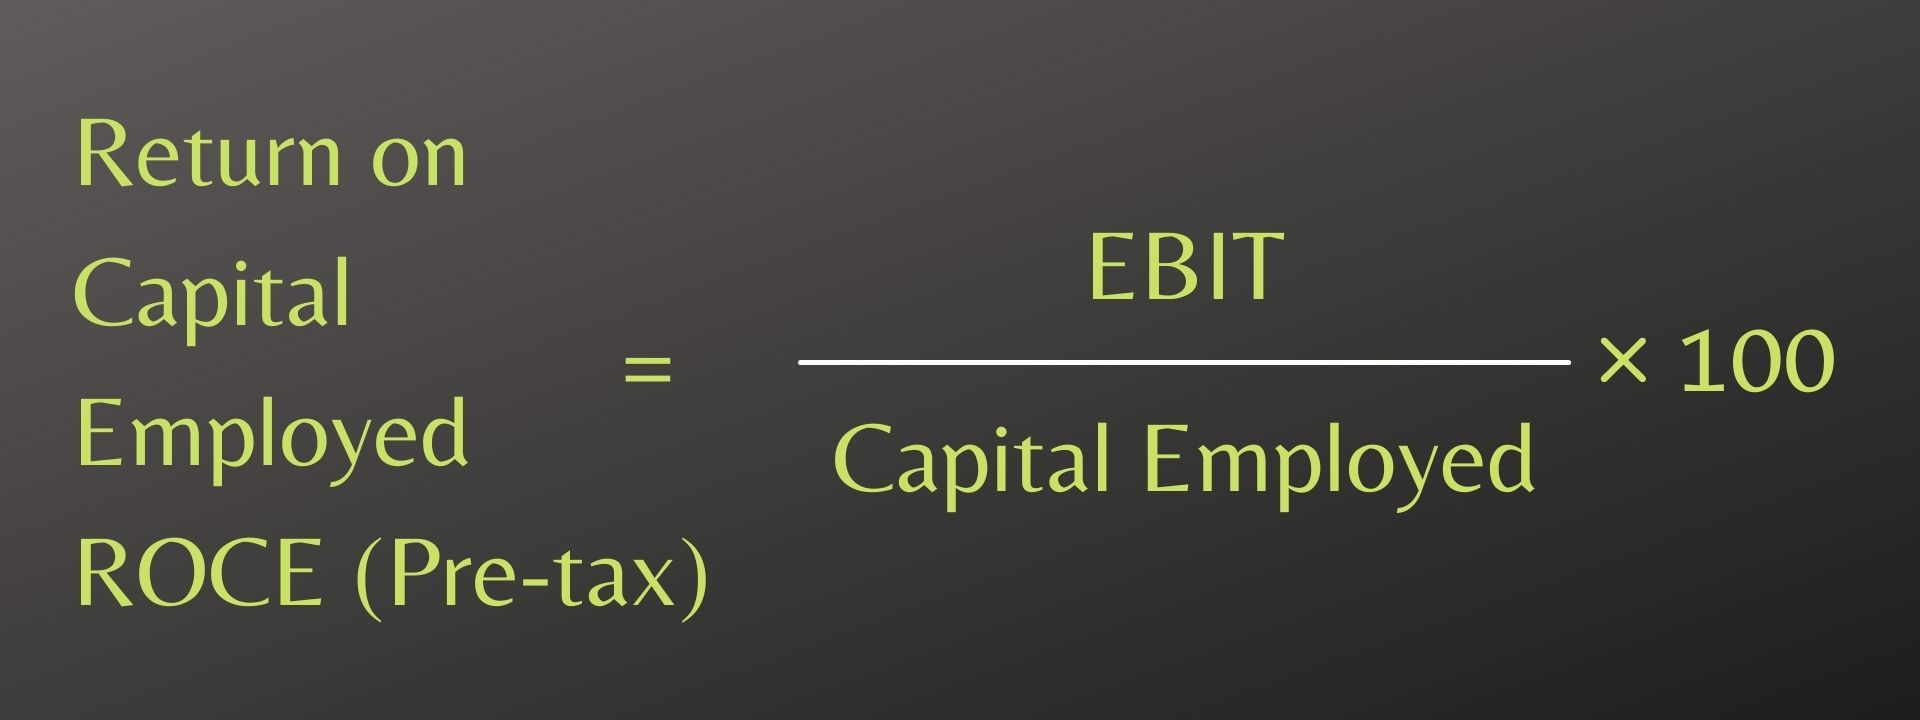 Return on Capital Employed ROCE (Pre-tax)